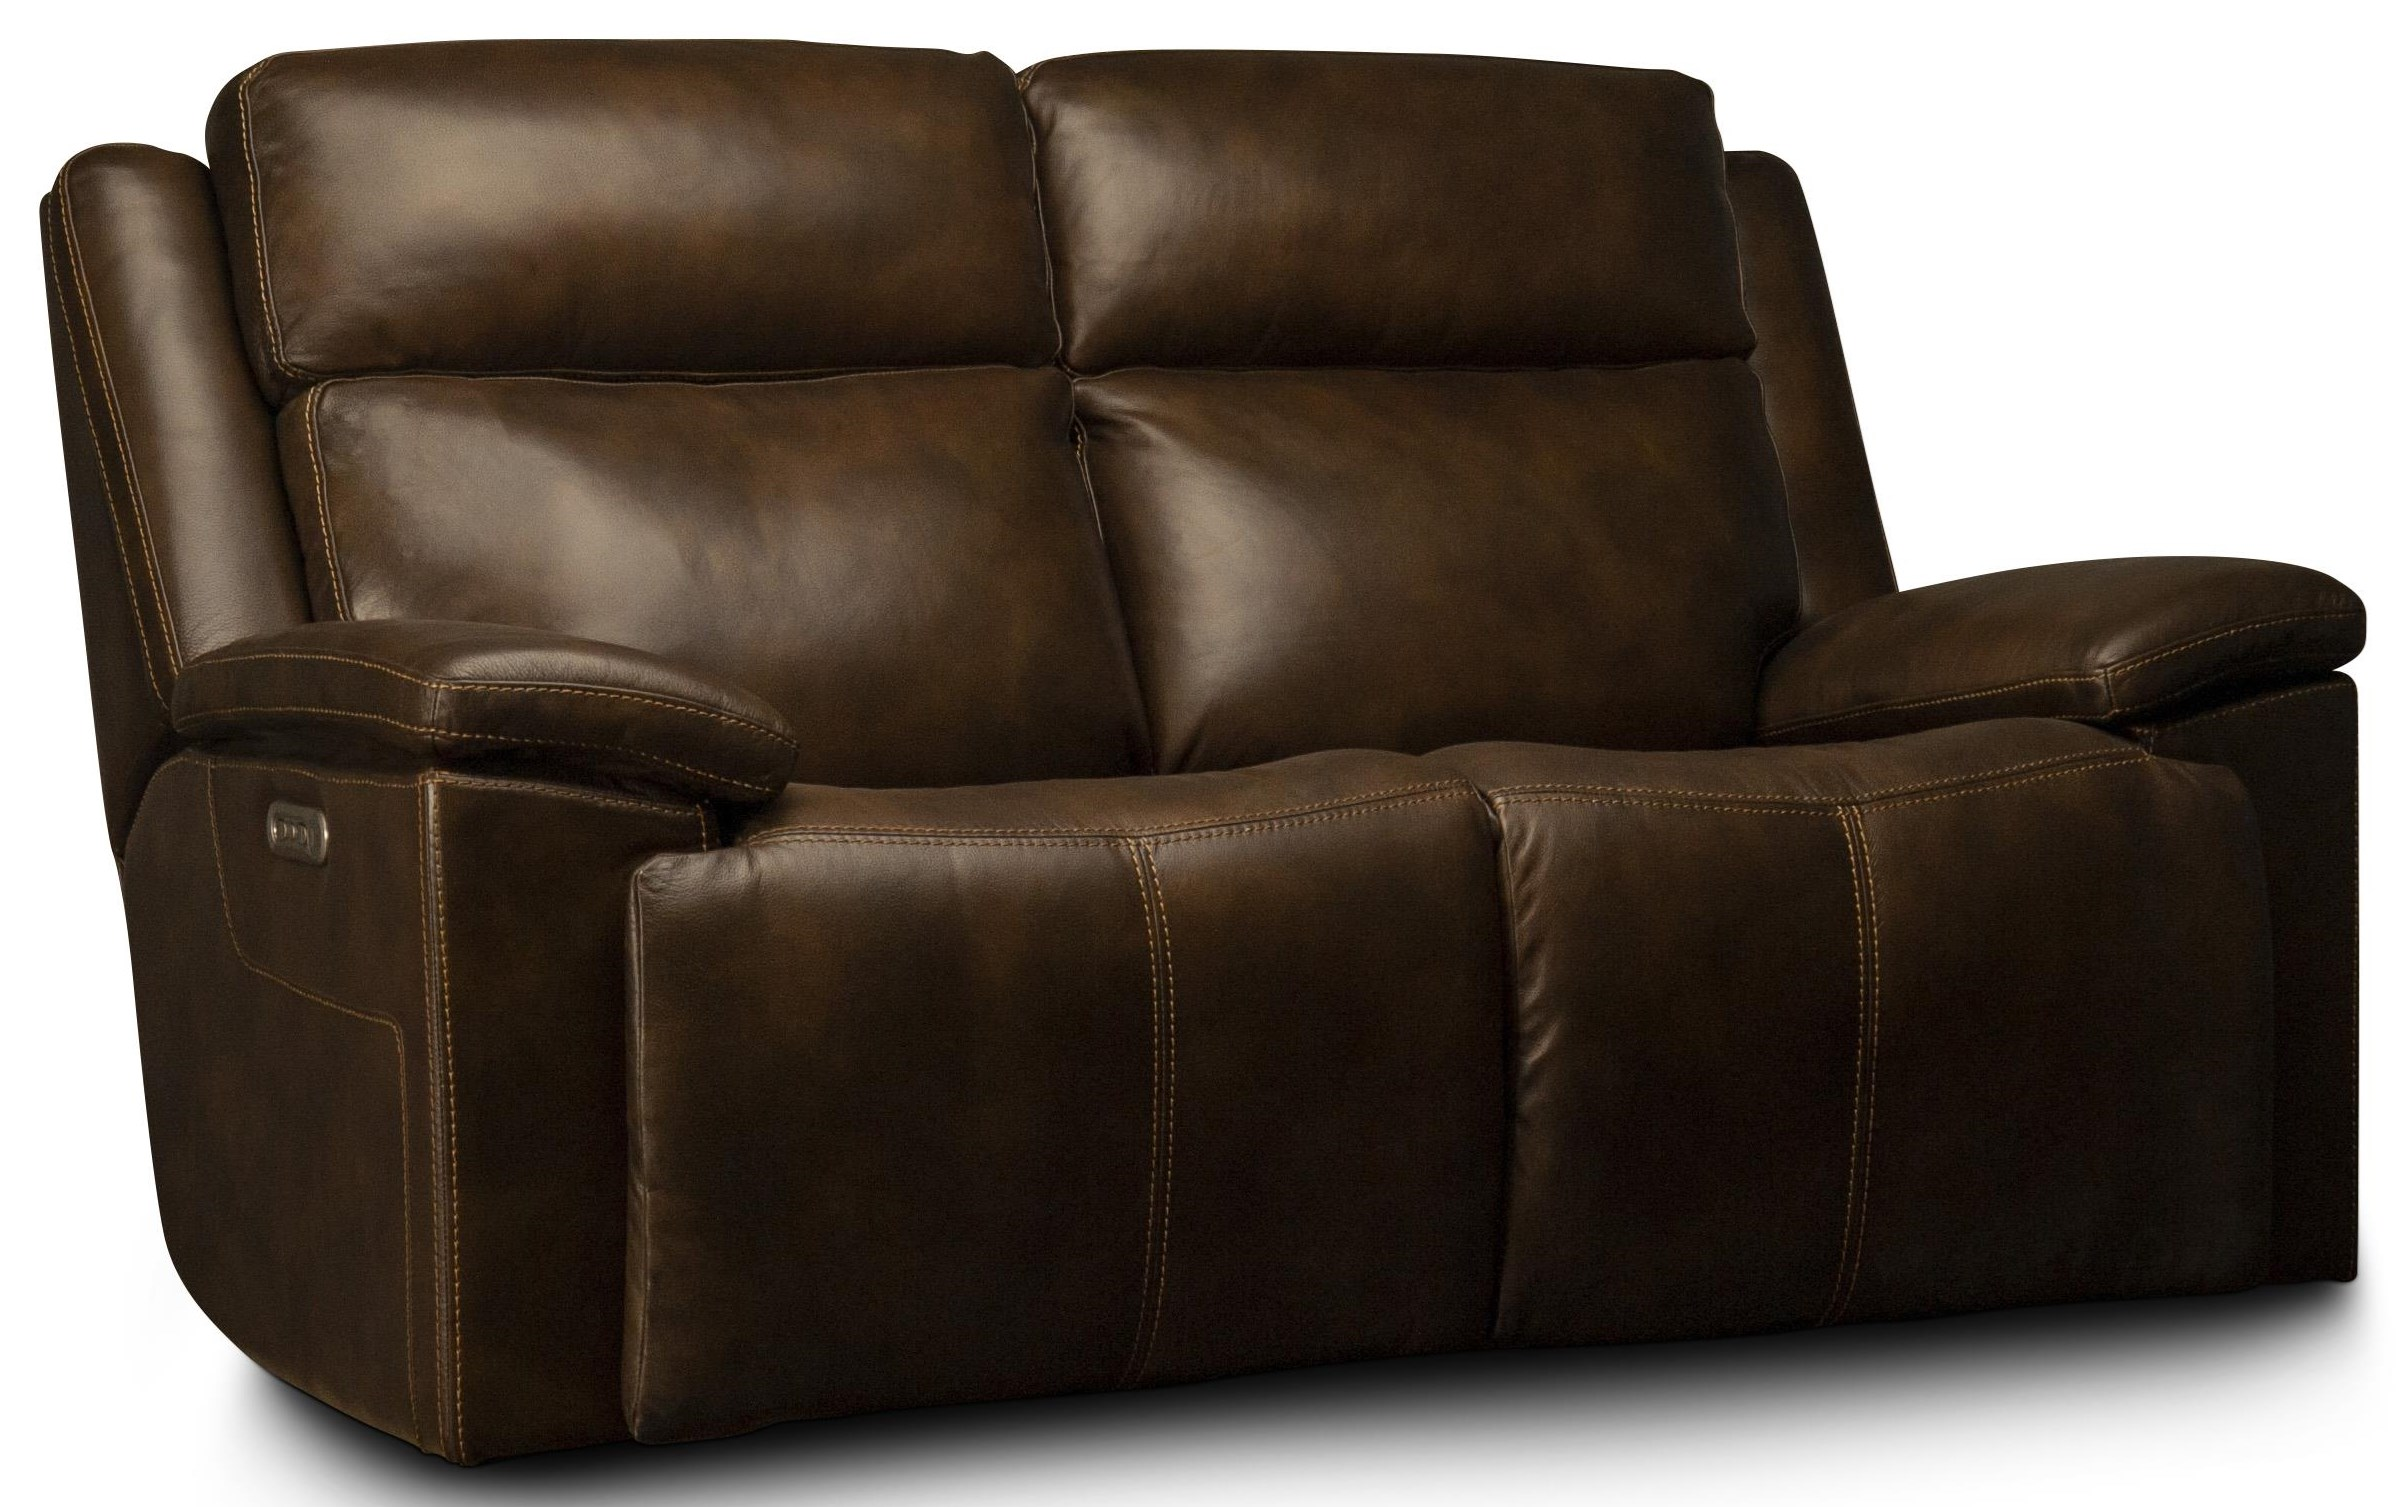 Calista Calista Power Leather Match Loveseat by Flexsteel Wynwood Collection at Morris Home